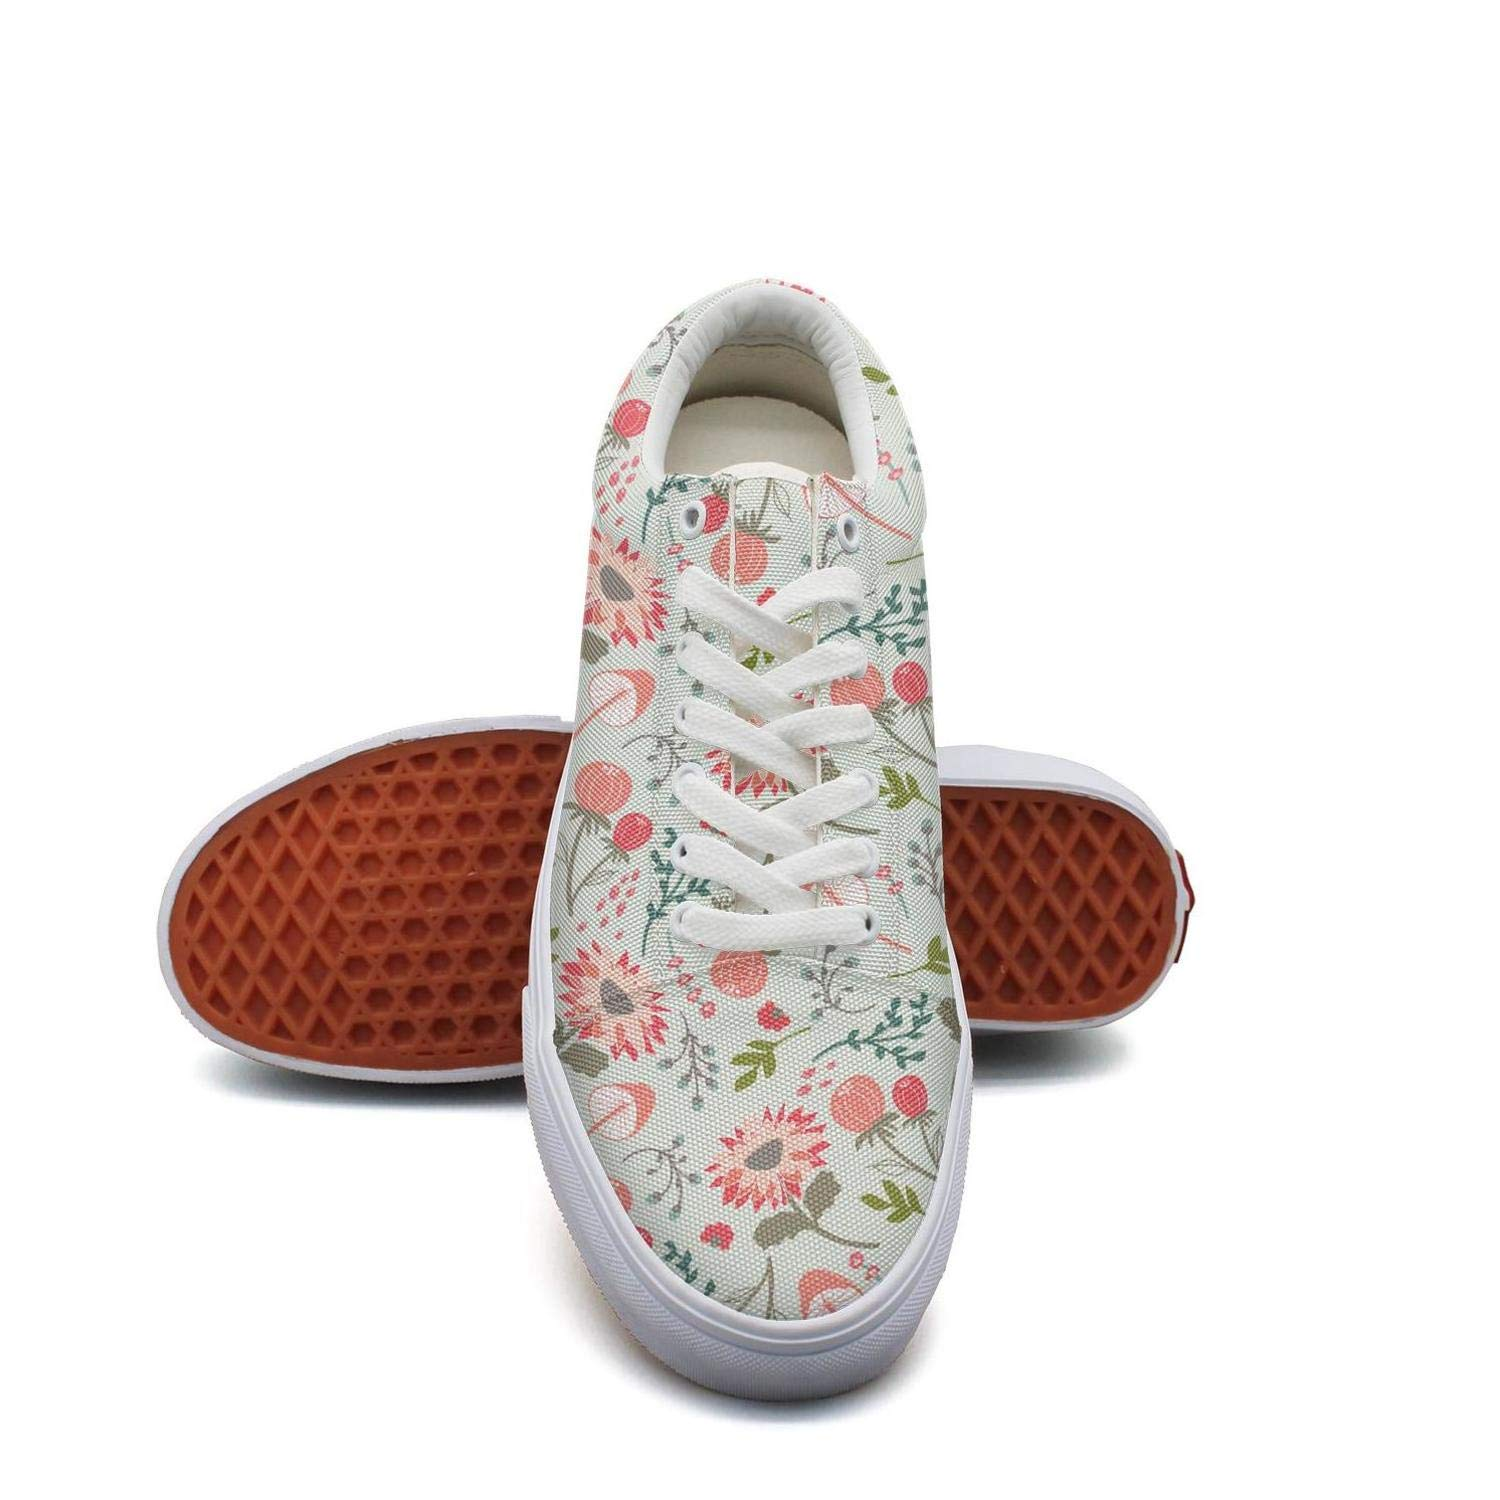 Womens Athleisure Fashion Shoes Blue Dandelion Wild Spring Time Floral Comfortable Loafers Slip on Christmas Sneakers